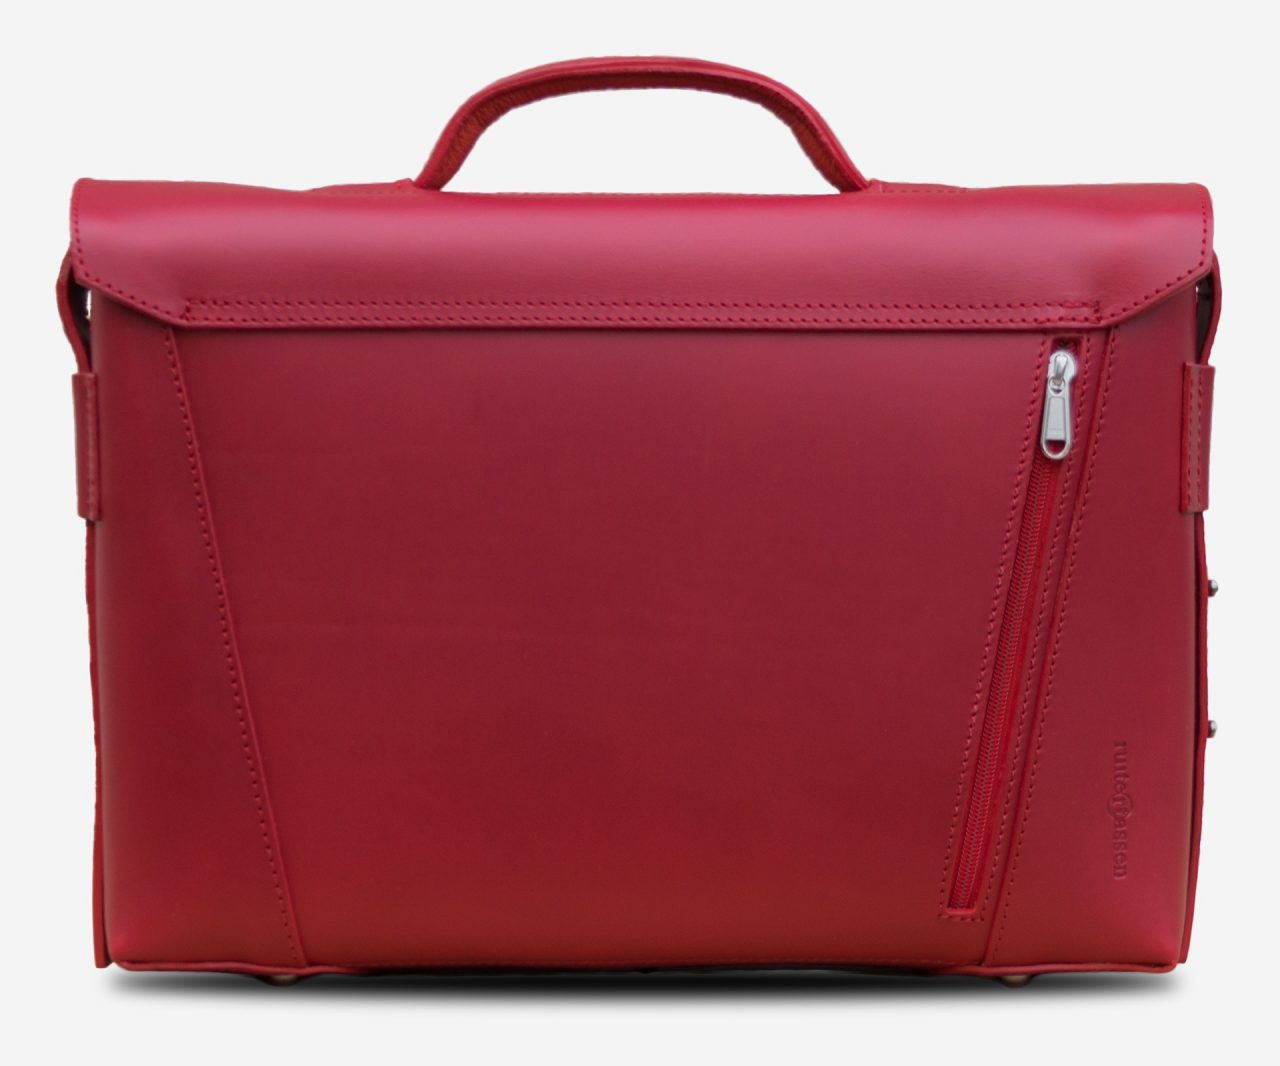 Back view of the elegant red vegetable-tanned leather briefcase bag for women with back pocket.